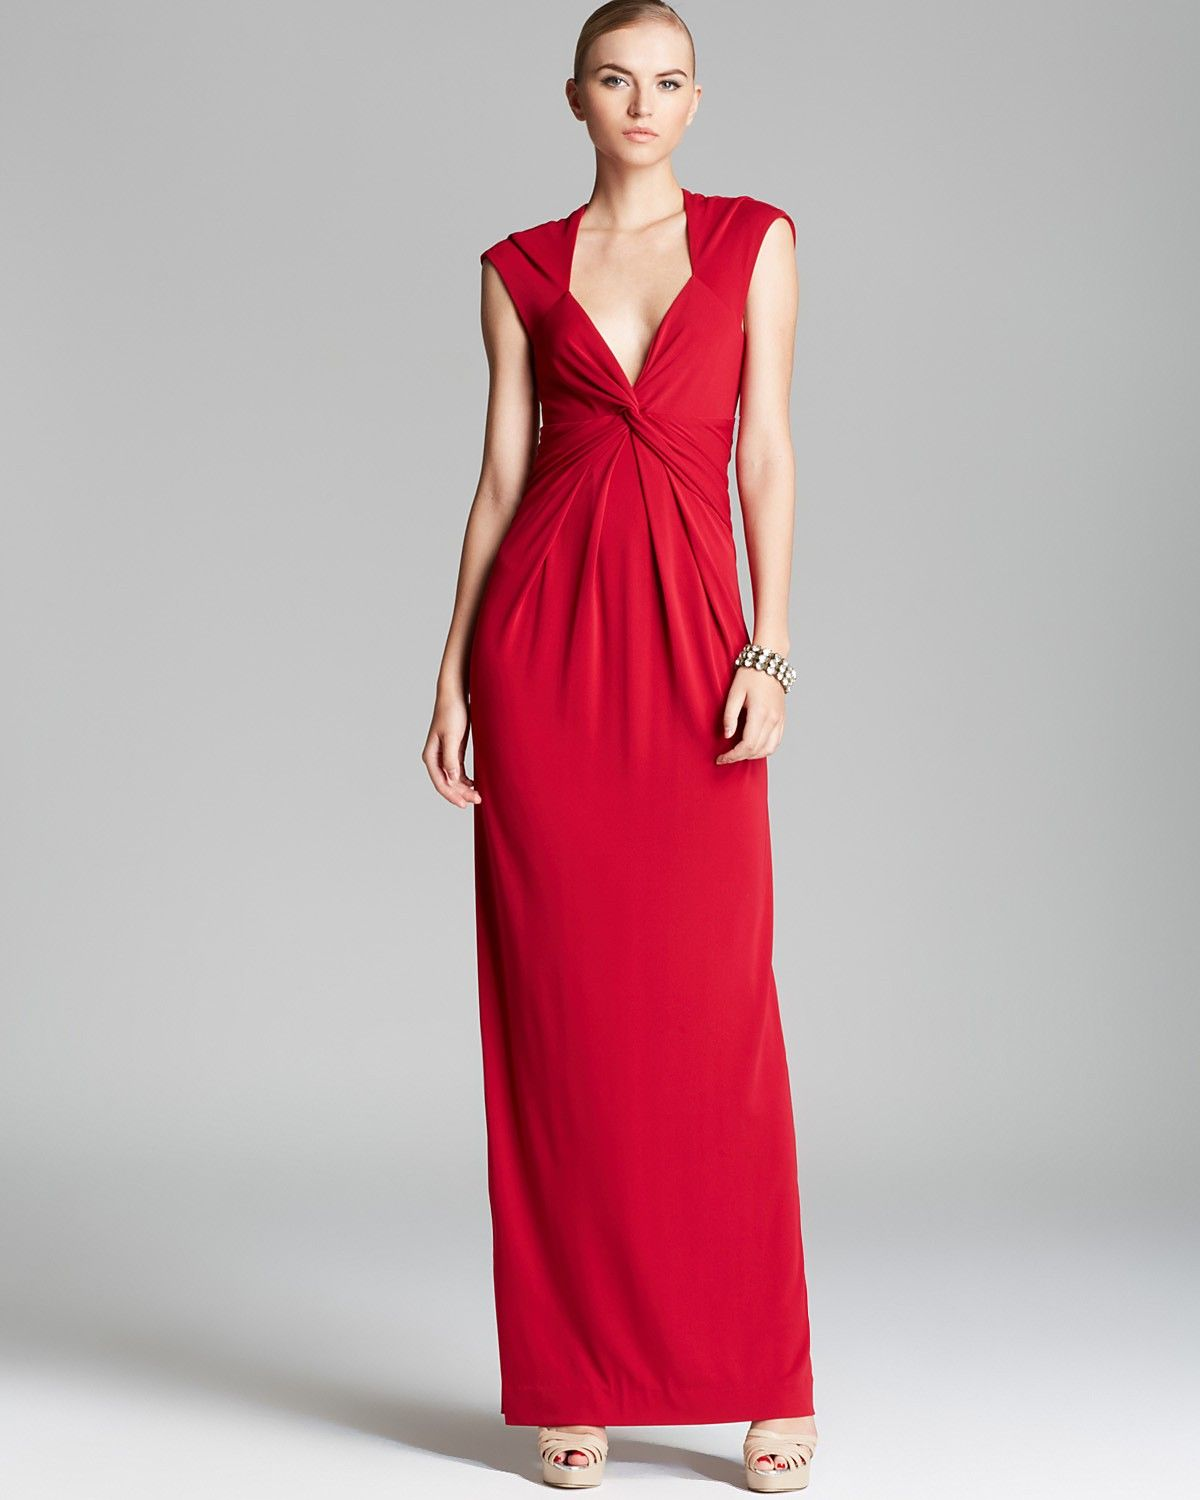 Nicole Miller V Neck Gathered Waist Gown - Cap Sleeve | Bloomingdale's